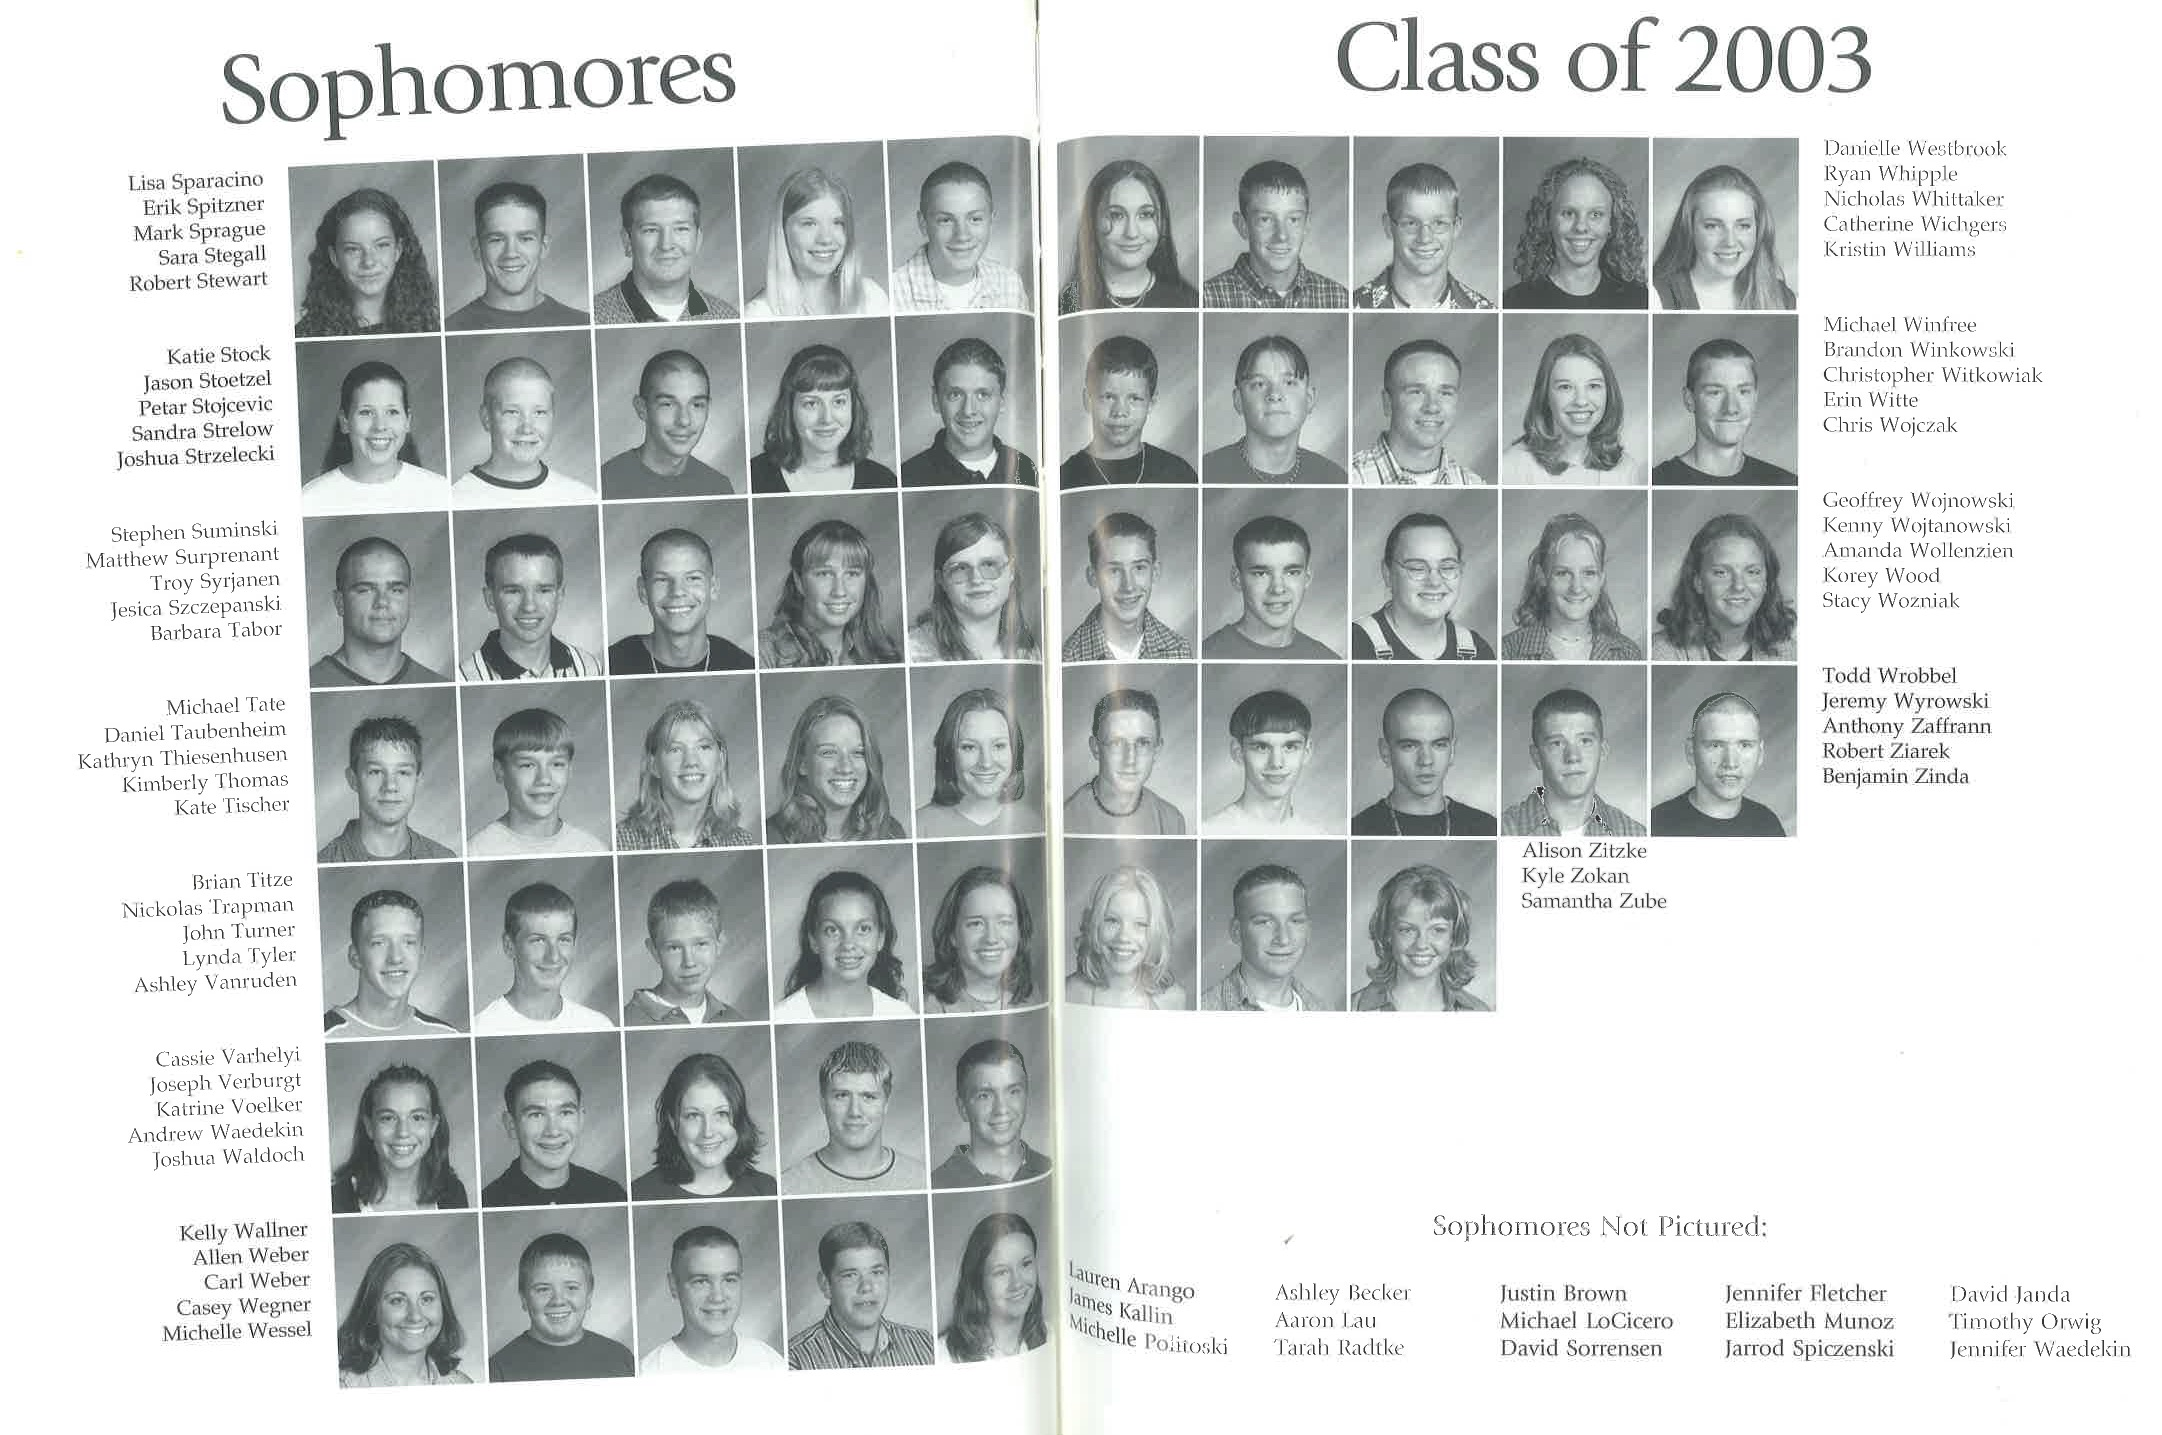 2001_Yearbook_36.jpg